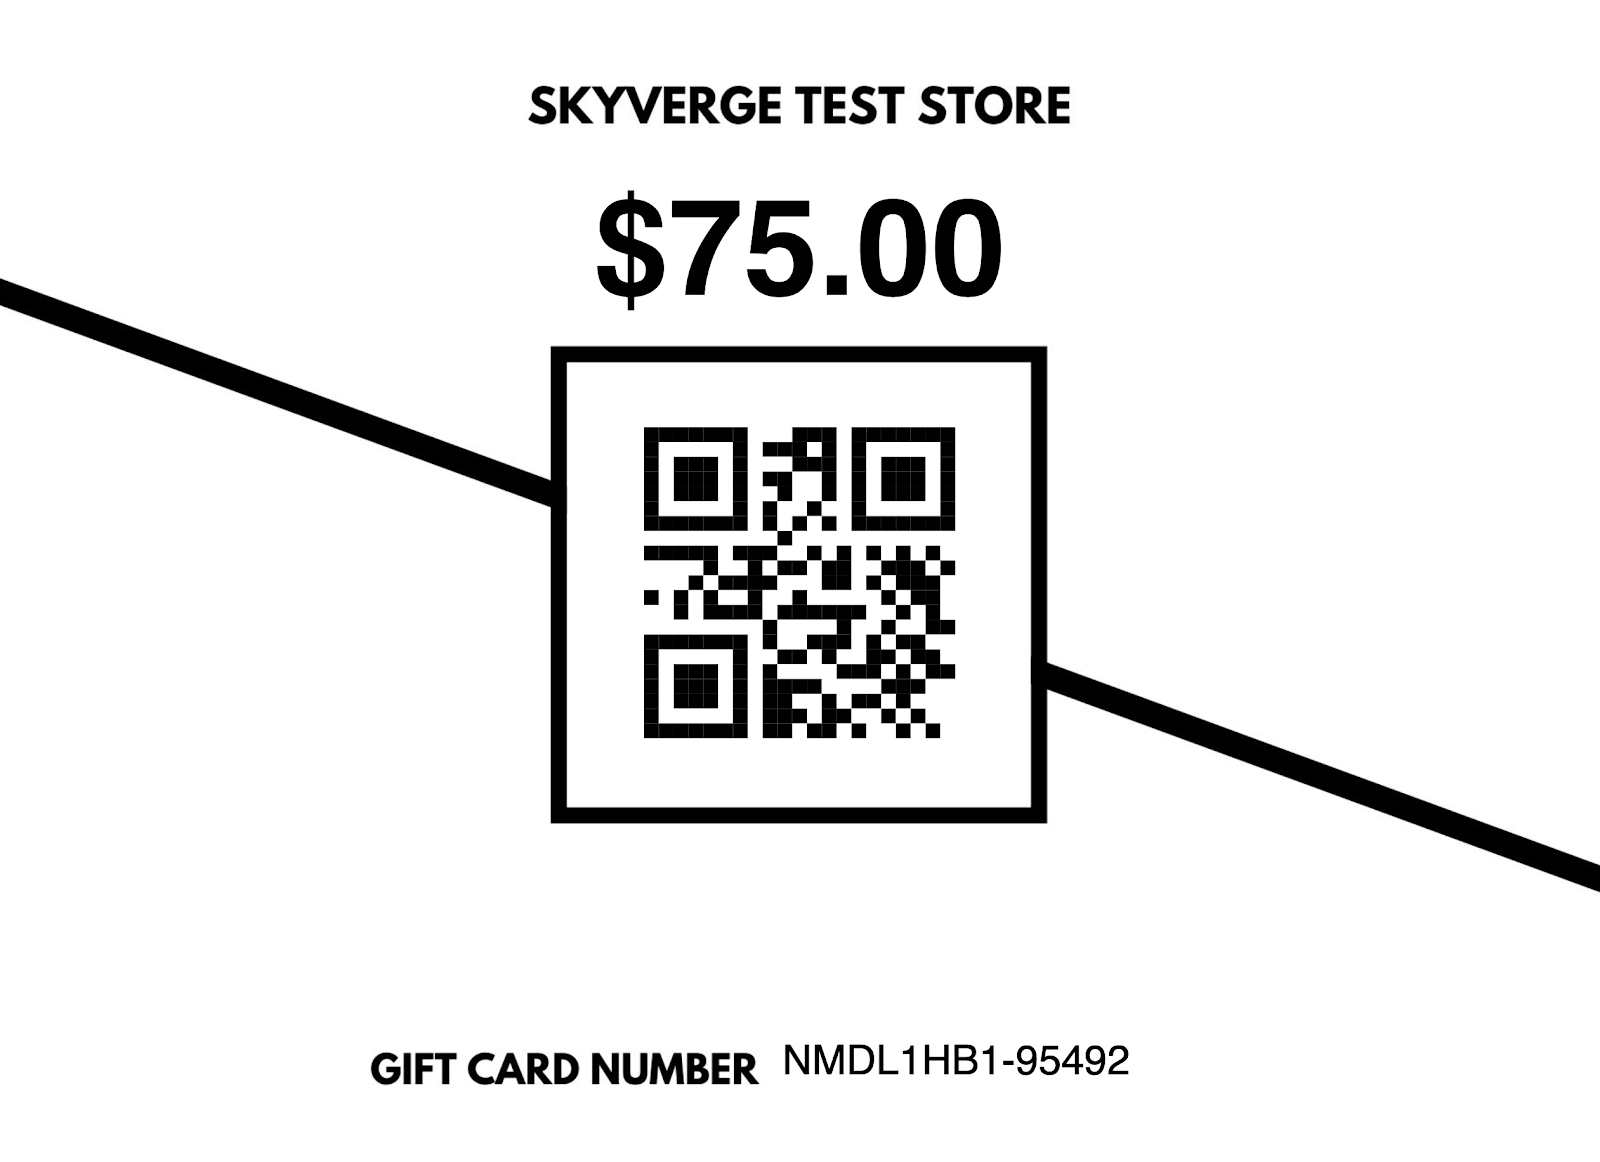 The final version of the gift card.